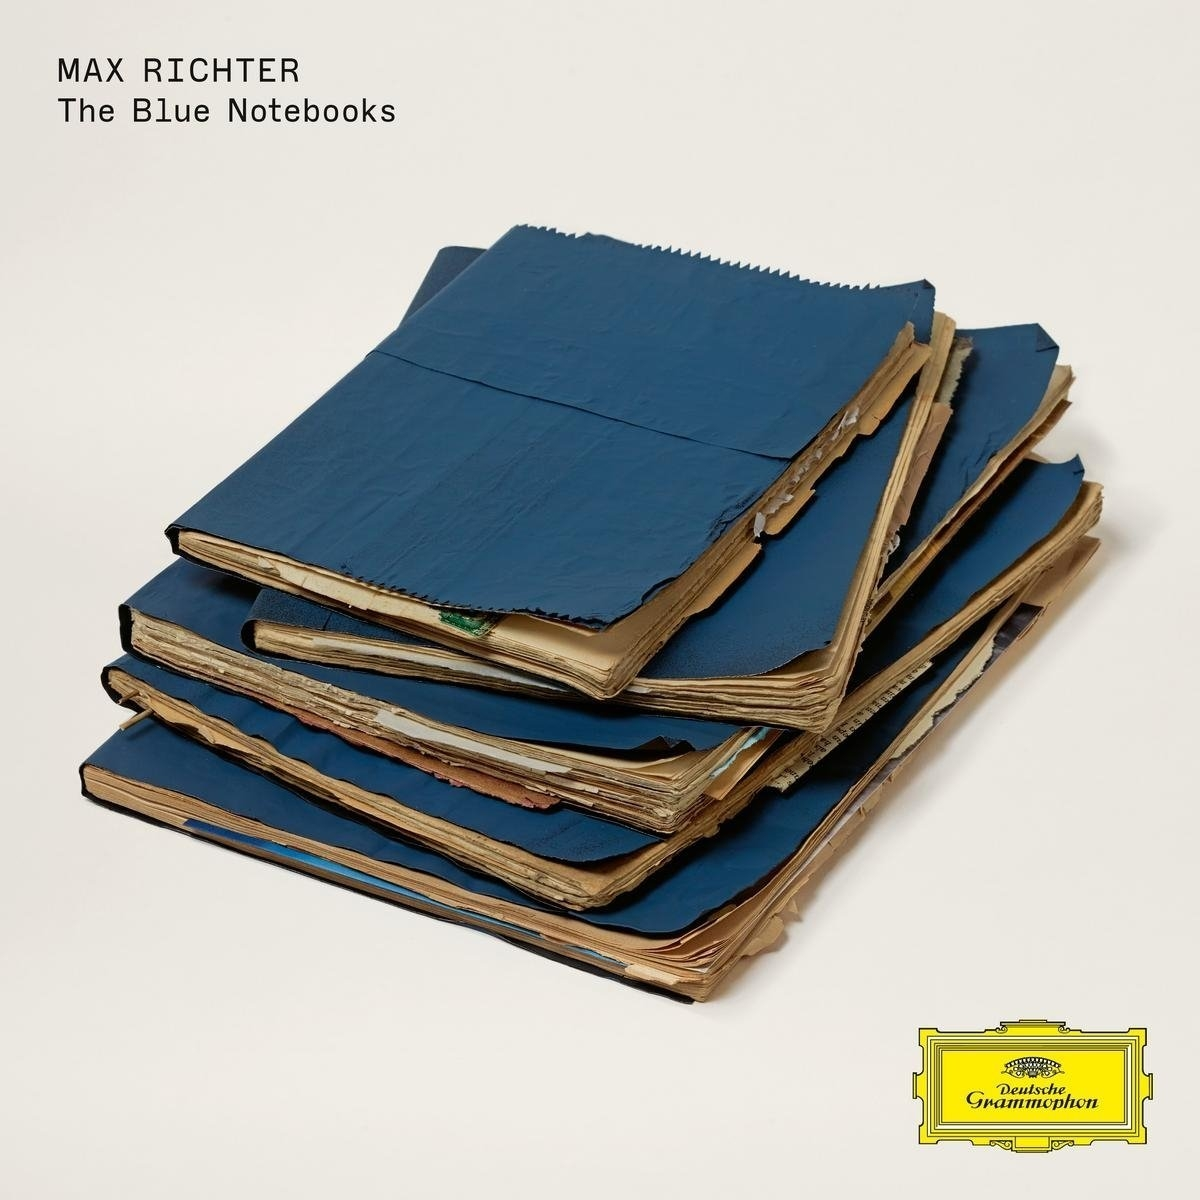 crossover 07 18 max Richter Blue Notebooks do cd